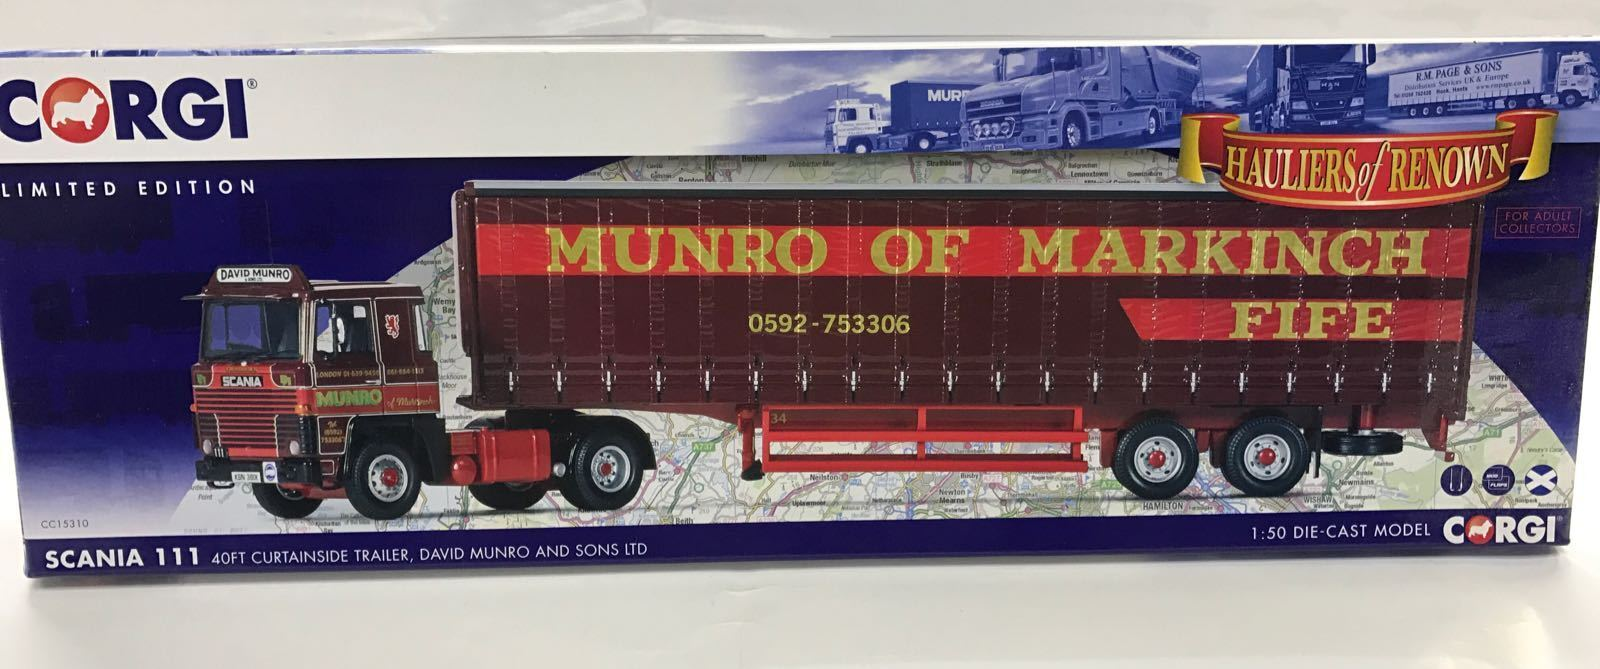 Corgi CC15310, Scania 111, 40ft Curtainside Trailer, David Munro & Sons Ltd